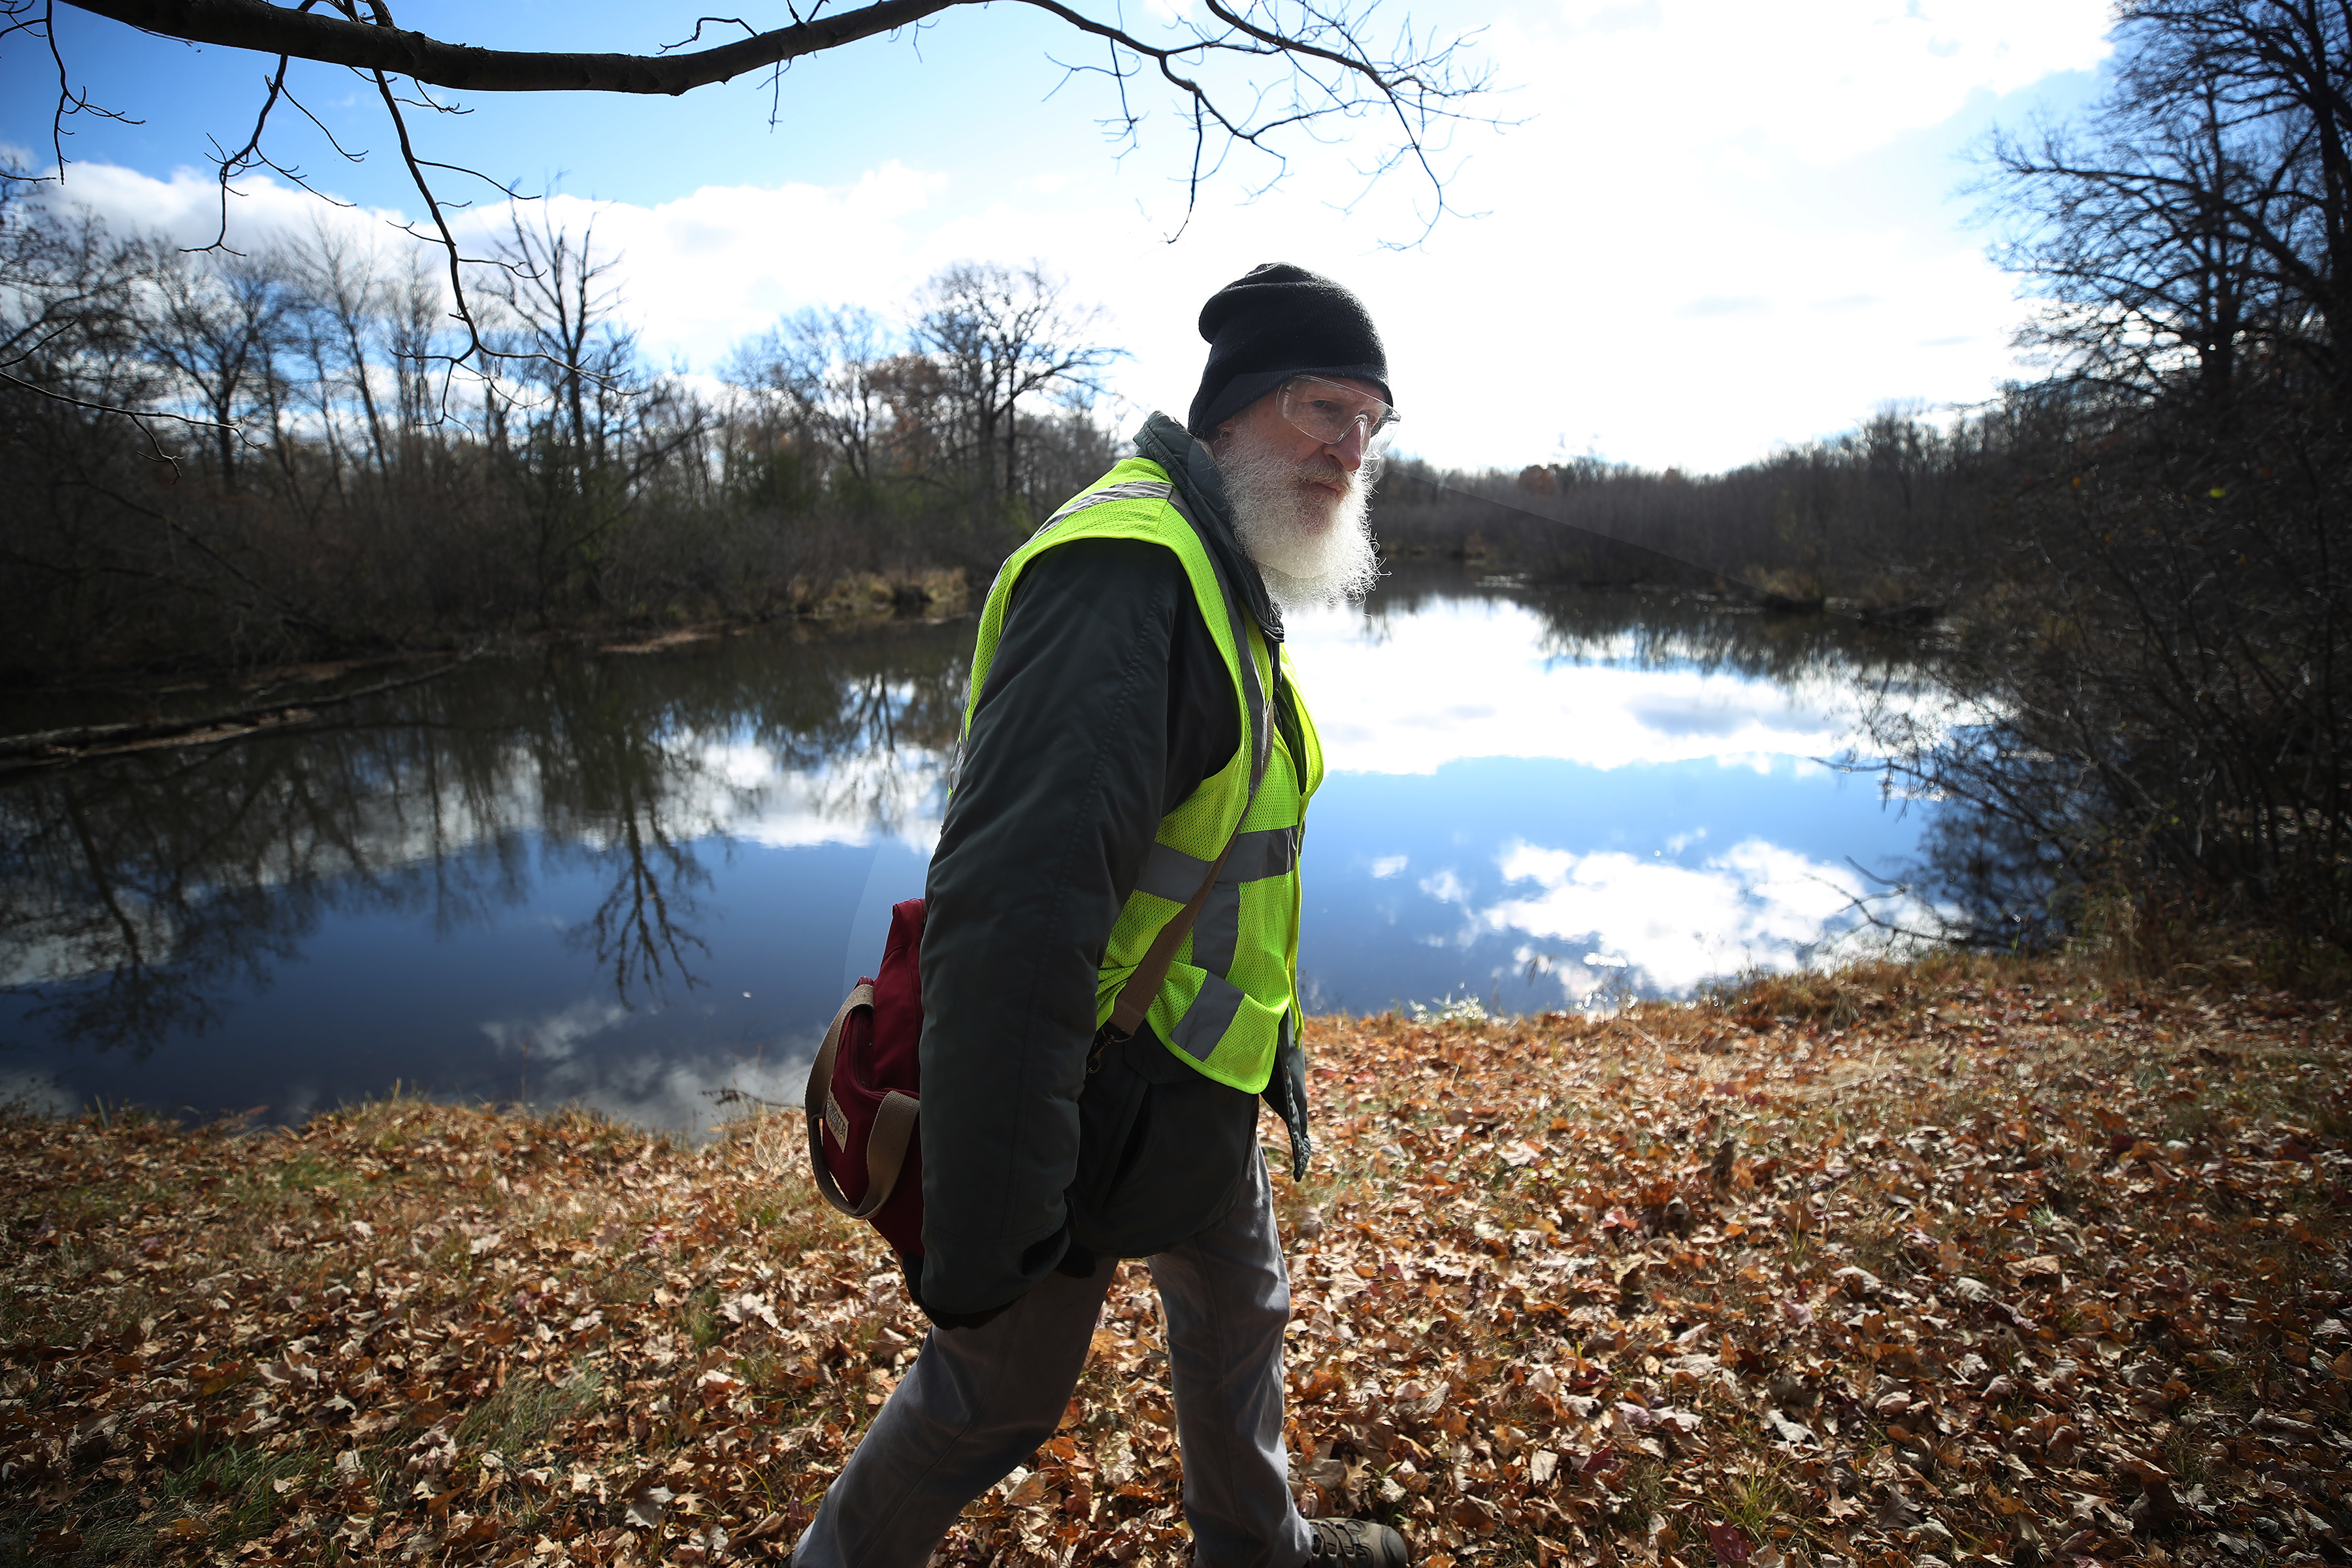 Greg Niemuth of Eau Claire searched along the Yellow river around 15 avenue near highway 25 just north of town for missing 13-year-old Jayme Closs Tuesday October 23, 2018 in Barron, WIS. ] Jerry Holt • Jerry.holt@startribune.com